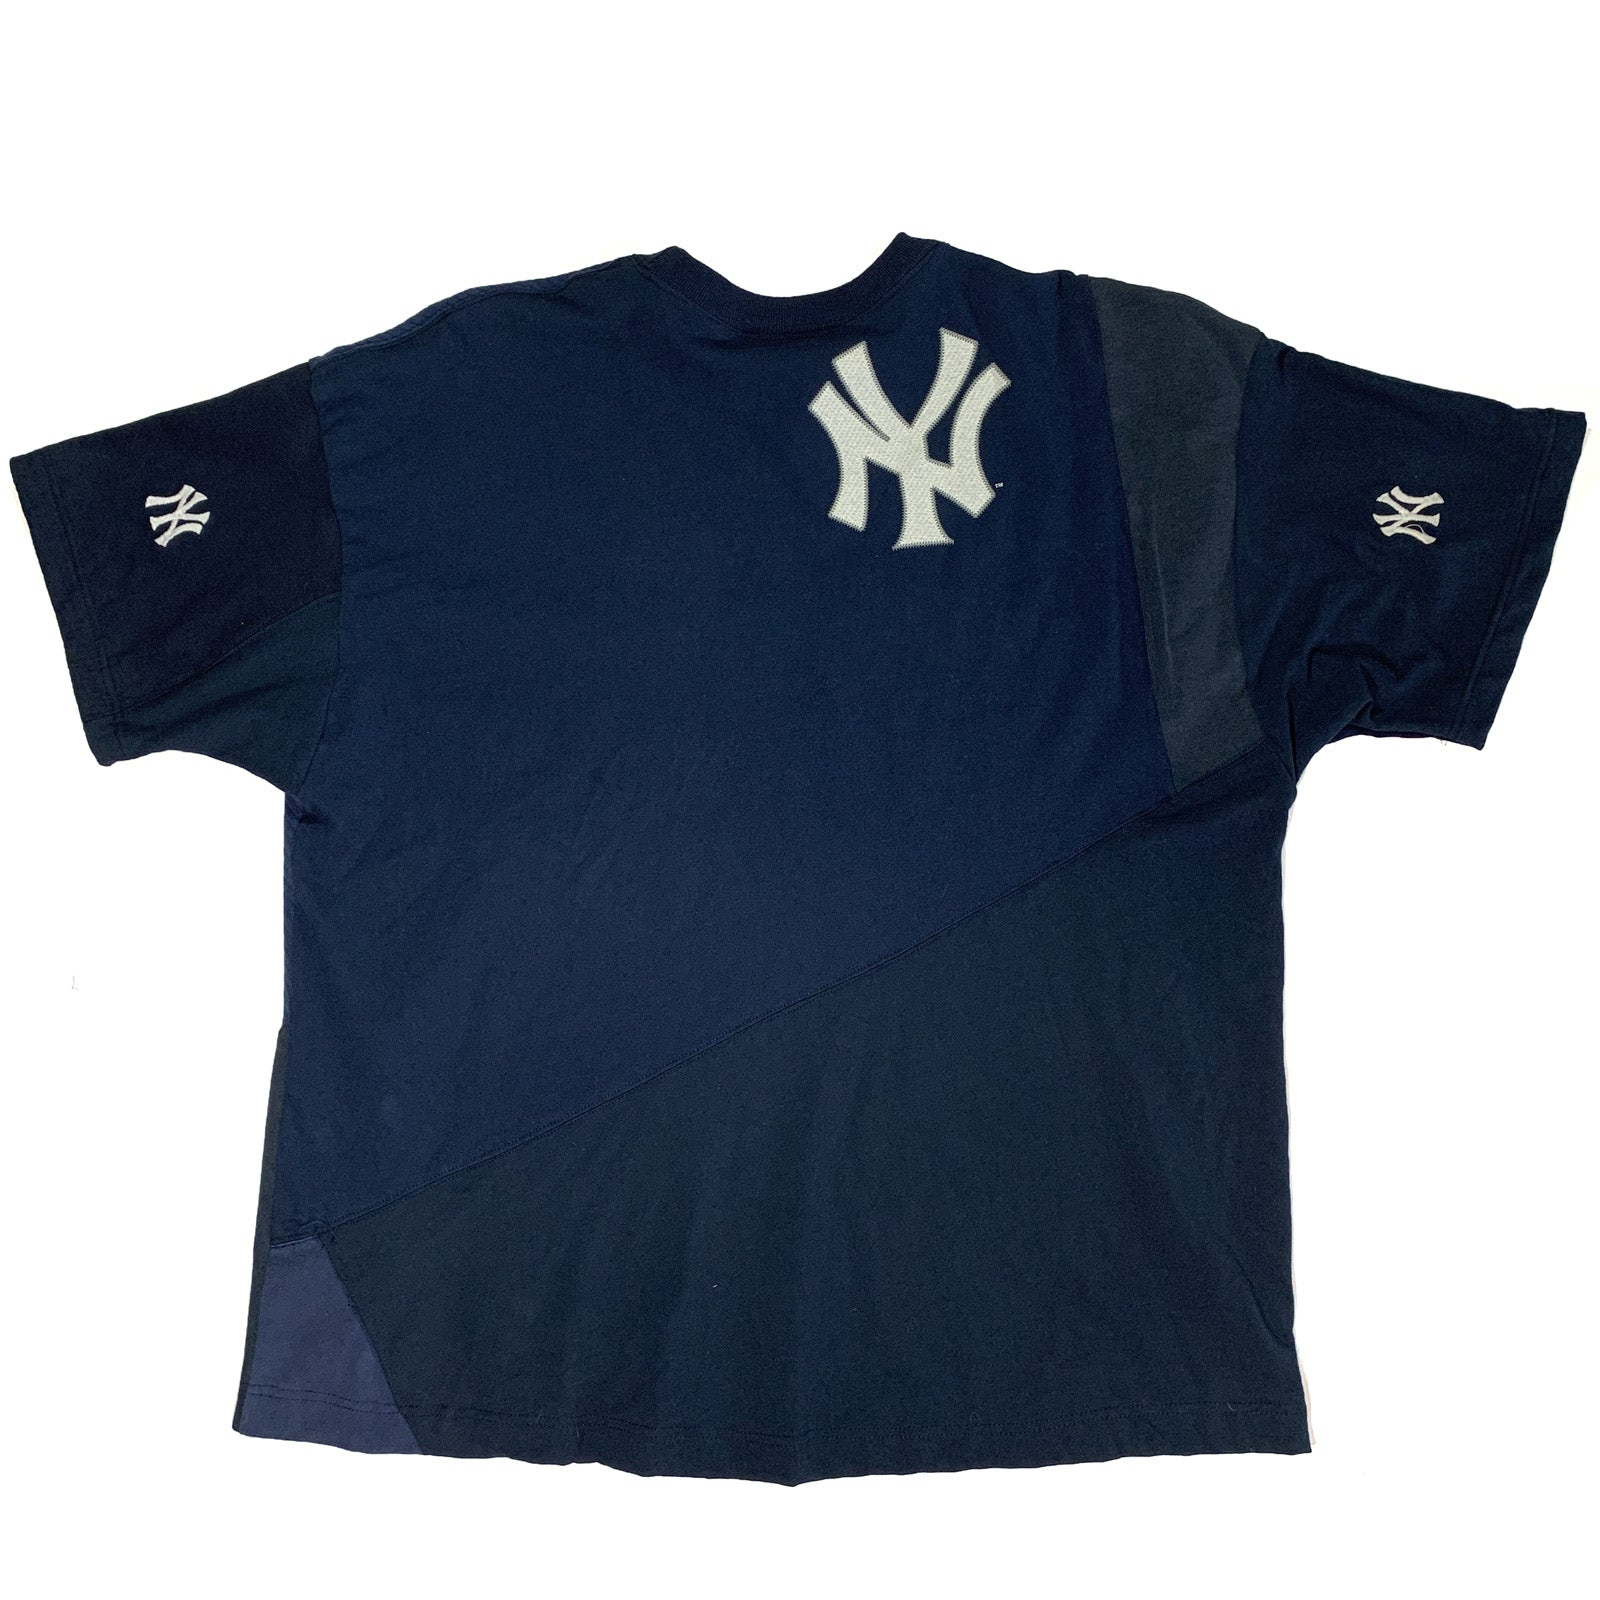 "BANDULU "" YANKEES ALL OVER "" CUT 'N SEW L TEE"